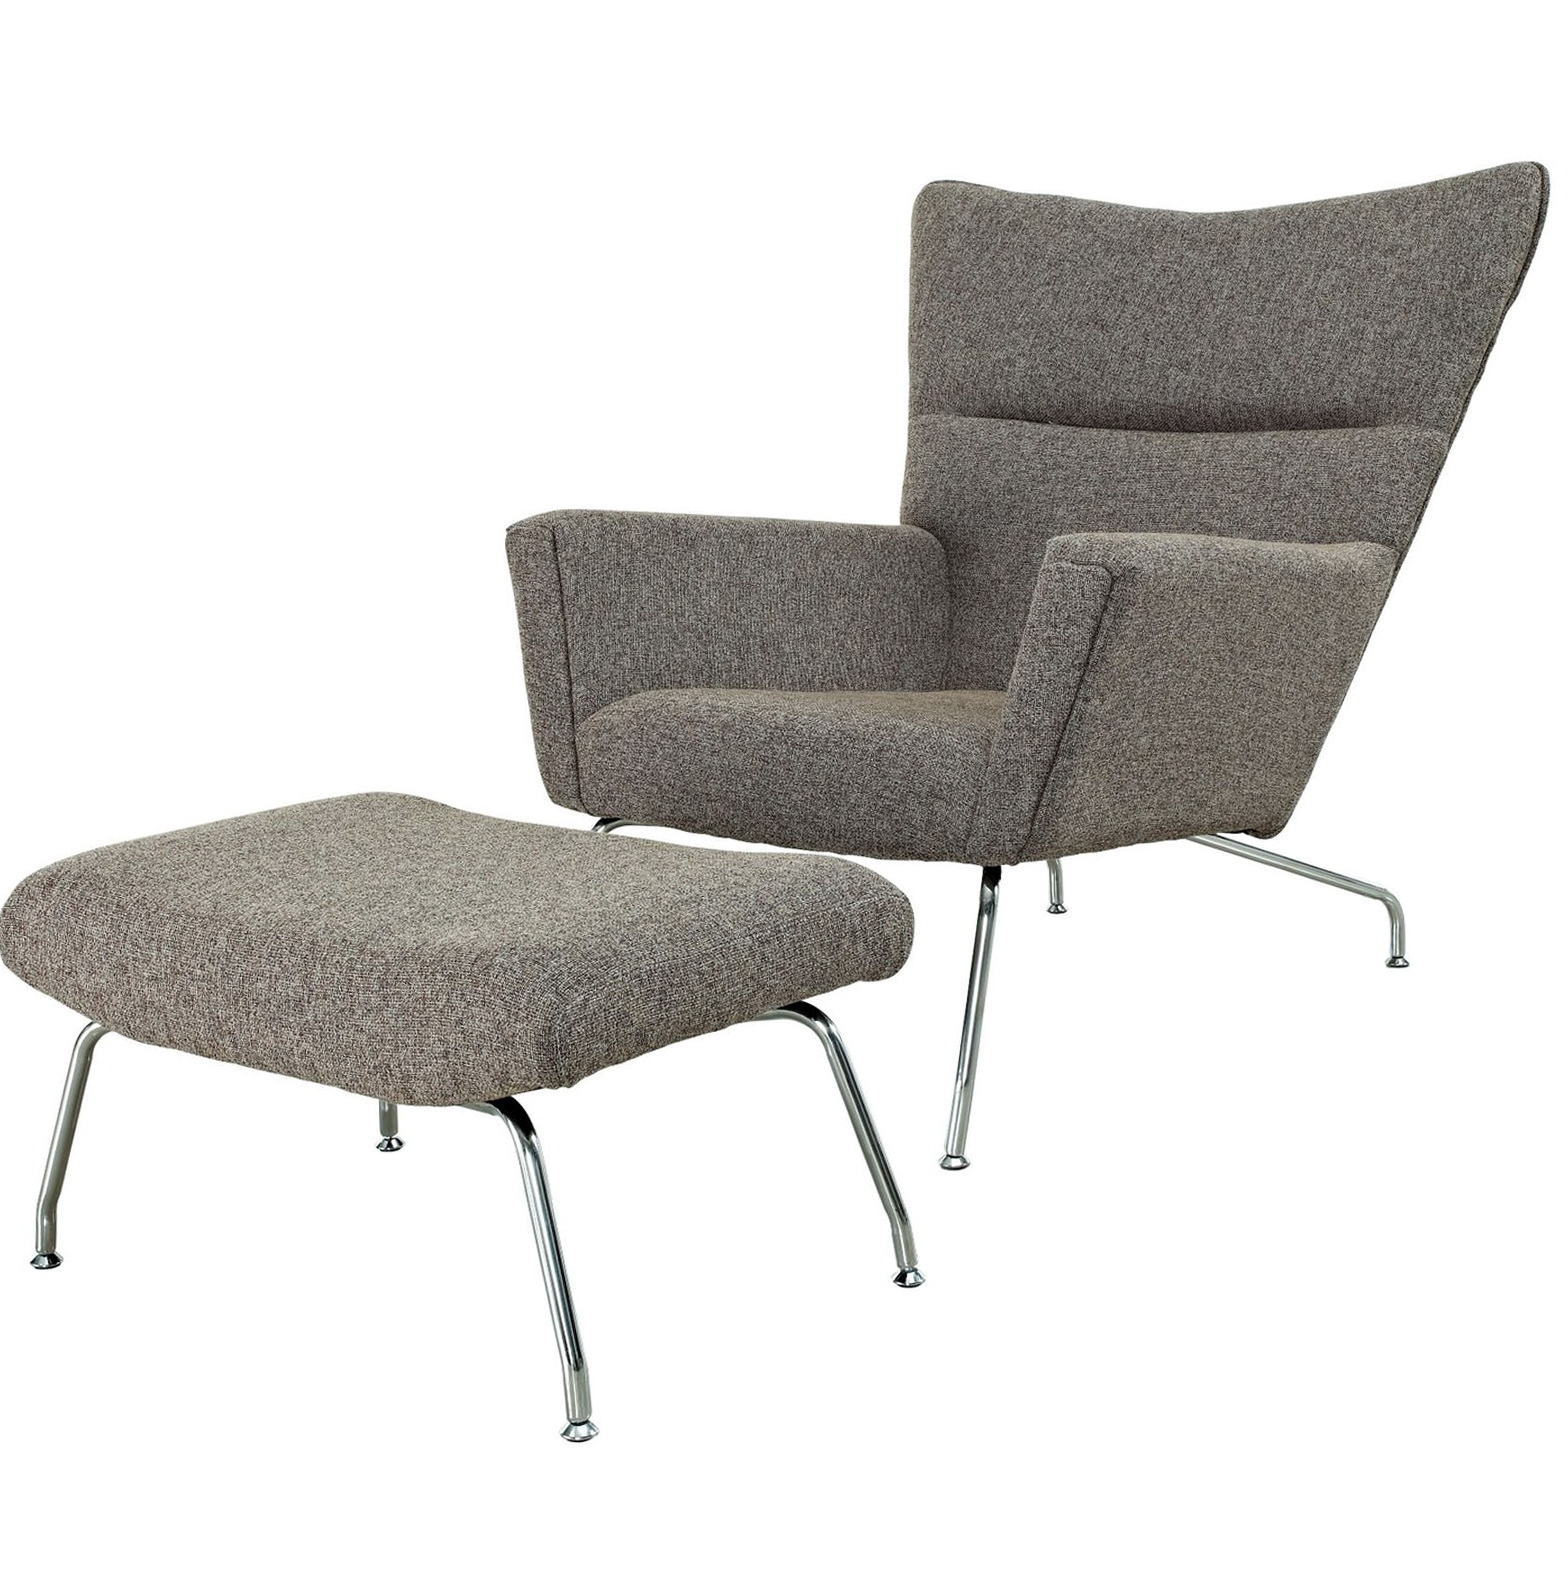 Modern Chairs With Ottomans